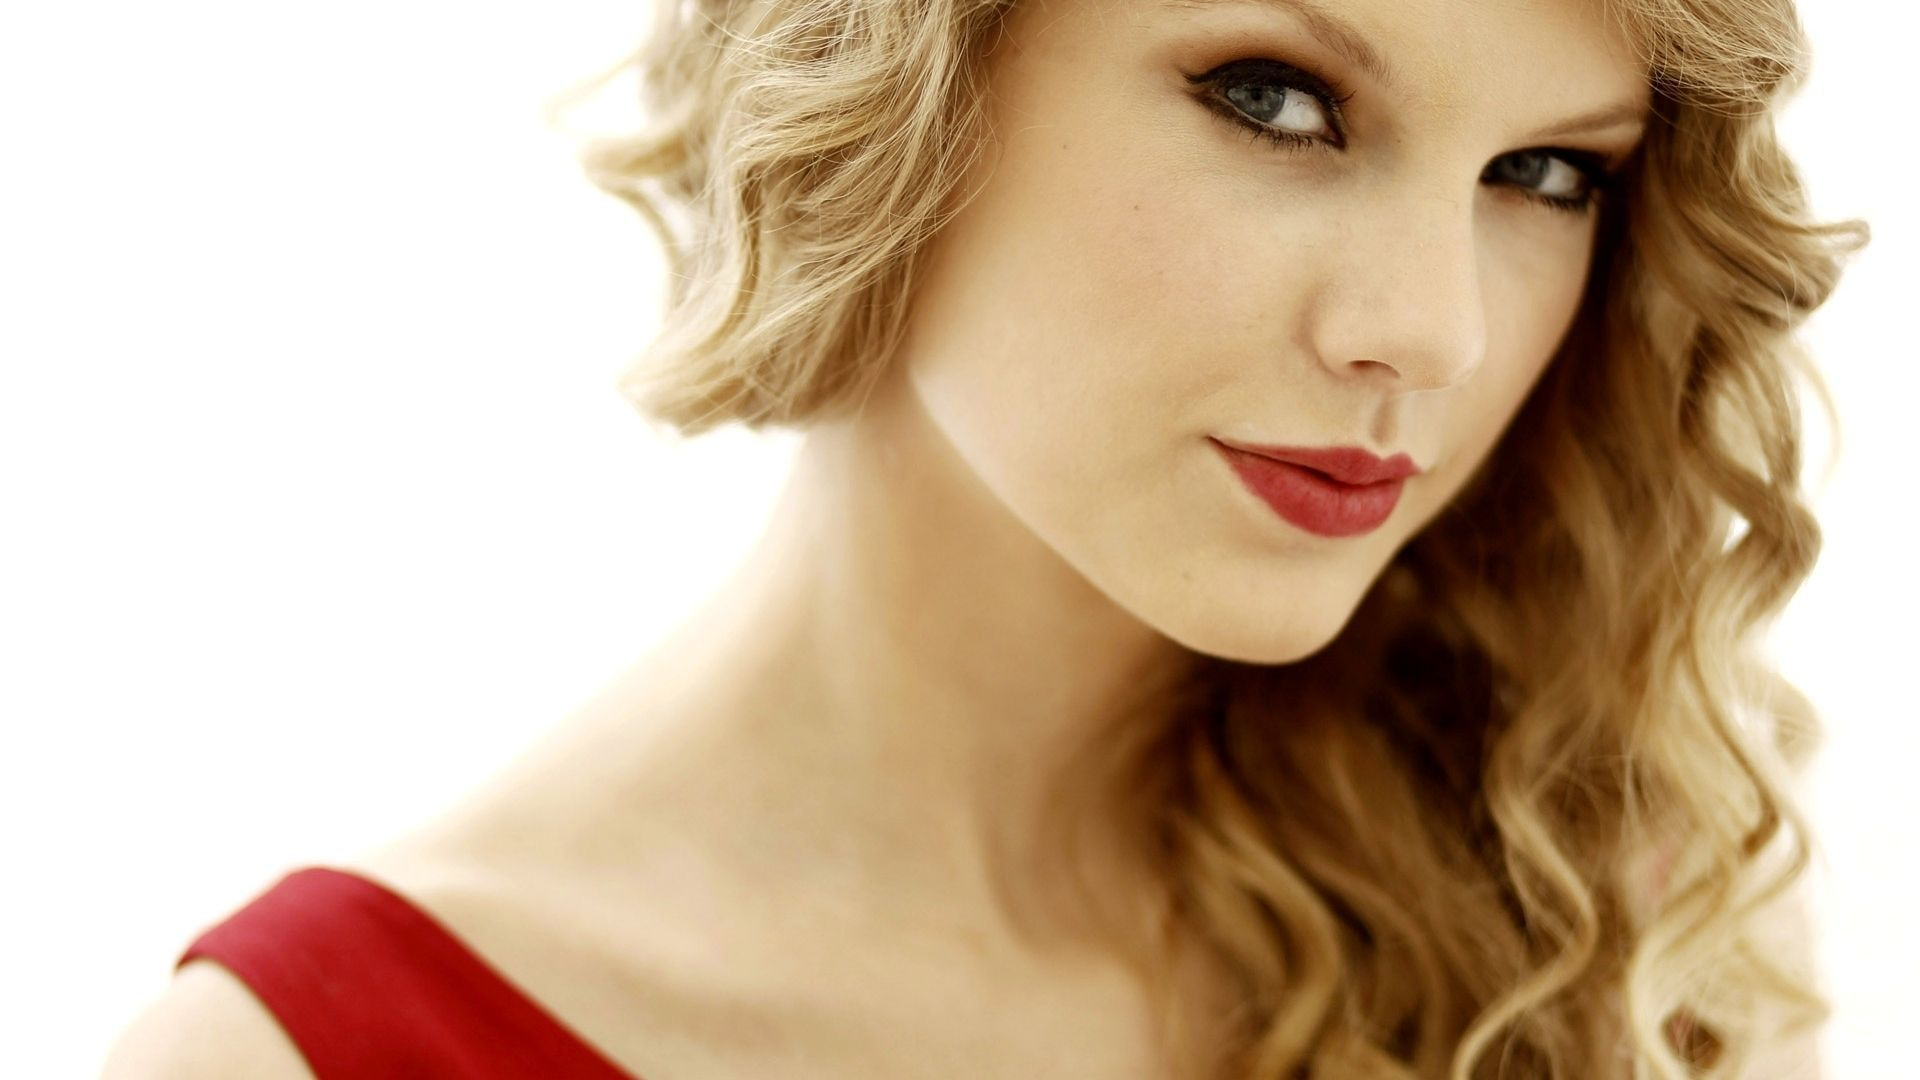 Download taylor swift 1080p hd wallpaper 3501 full size download taylor swift 1080p hd wallpaper 3501 full size voltagebd Images